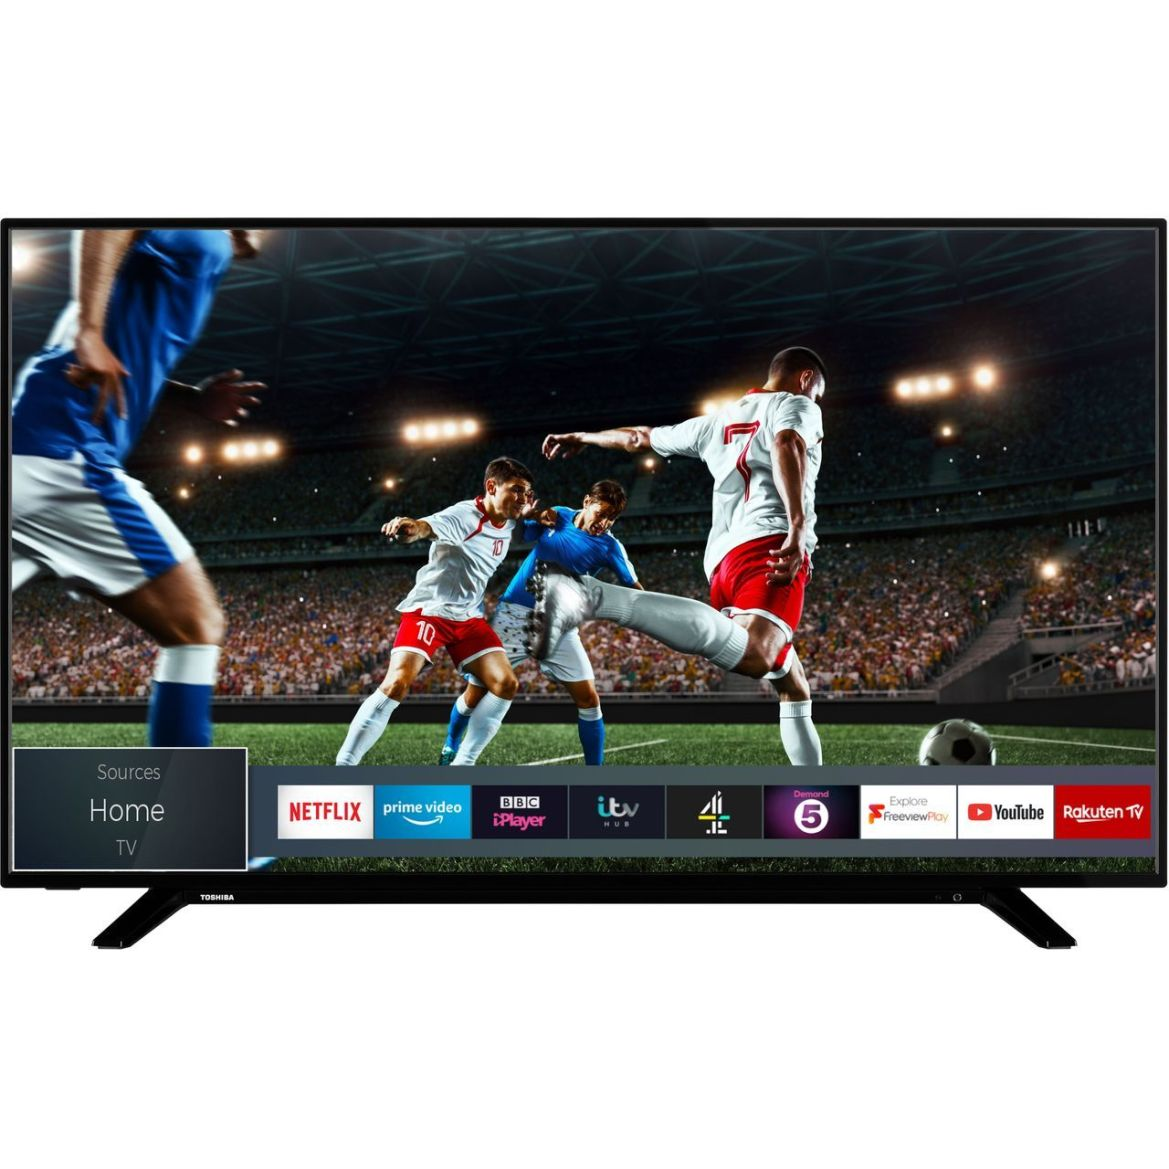 Why spend £269 on this Toshiba 43in 4K TV...